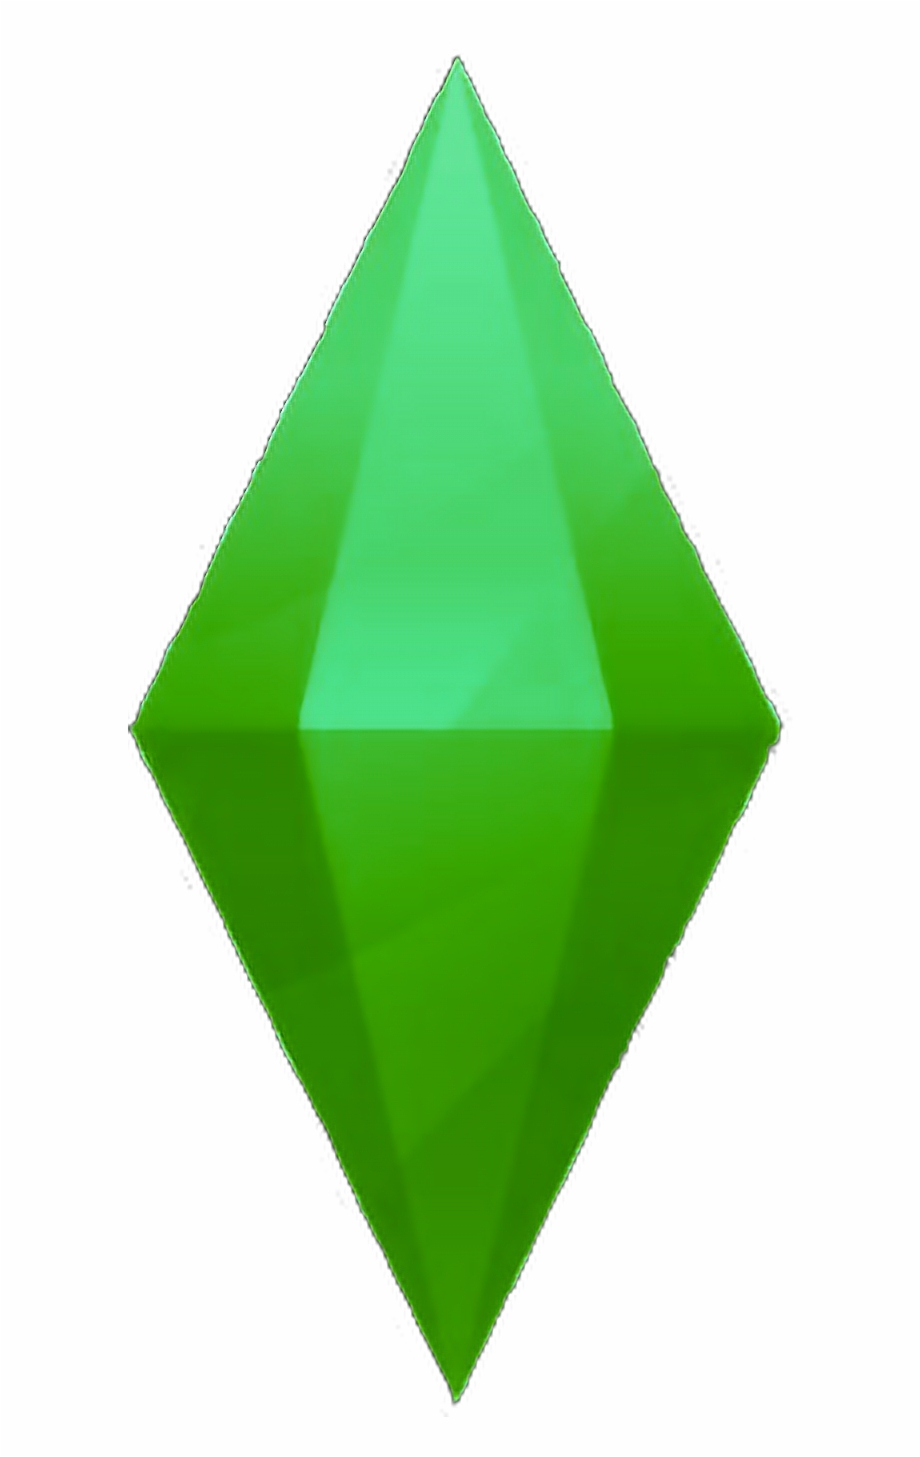 sims sims3 sims4 logo videogame   Sims 4 Plumbob Png   sims 4 920x1457